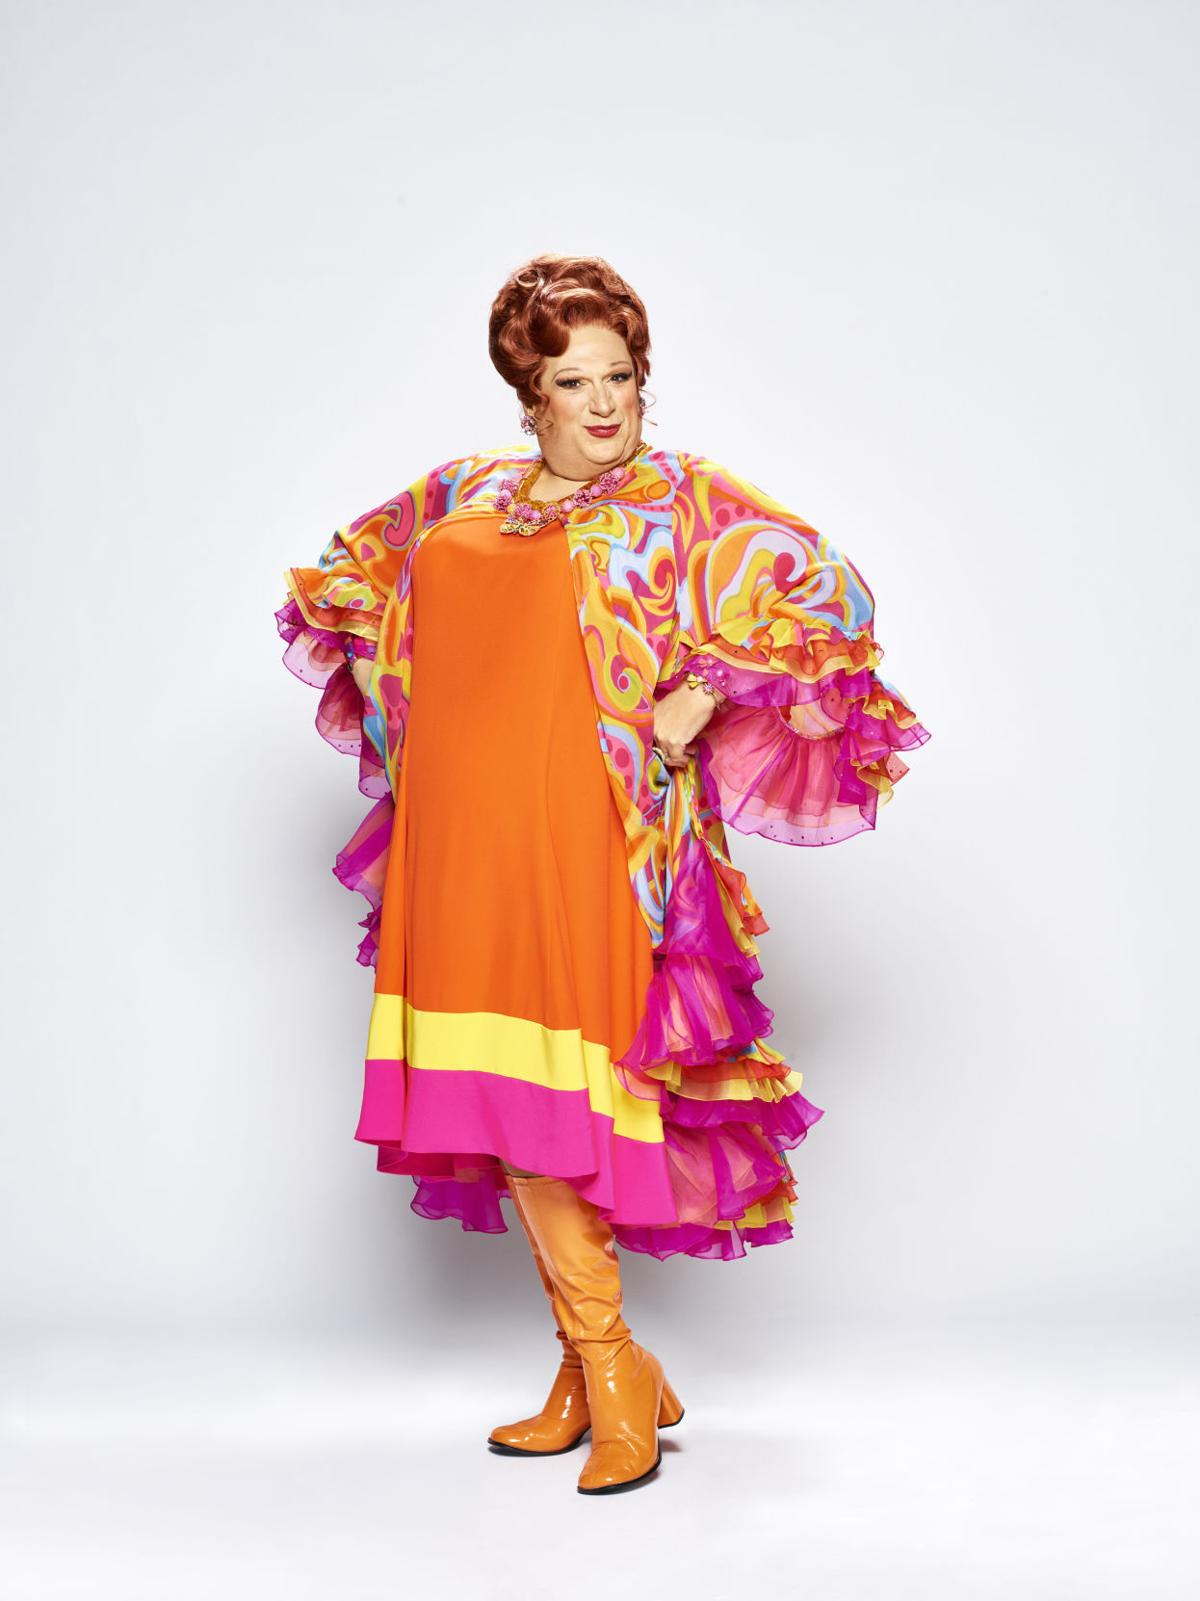 Harvey Fierstein Gives Hairspray One More Shot